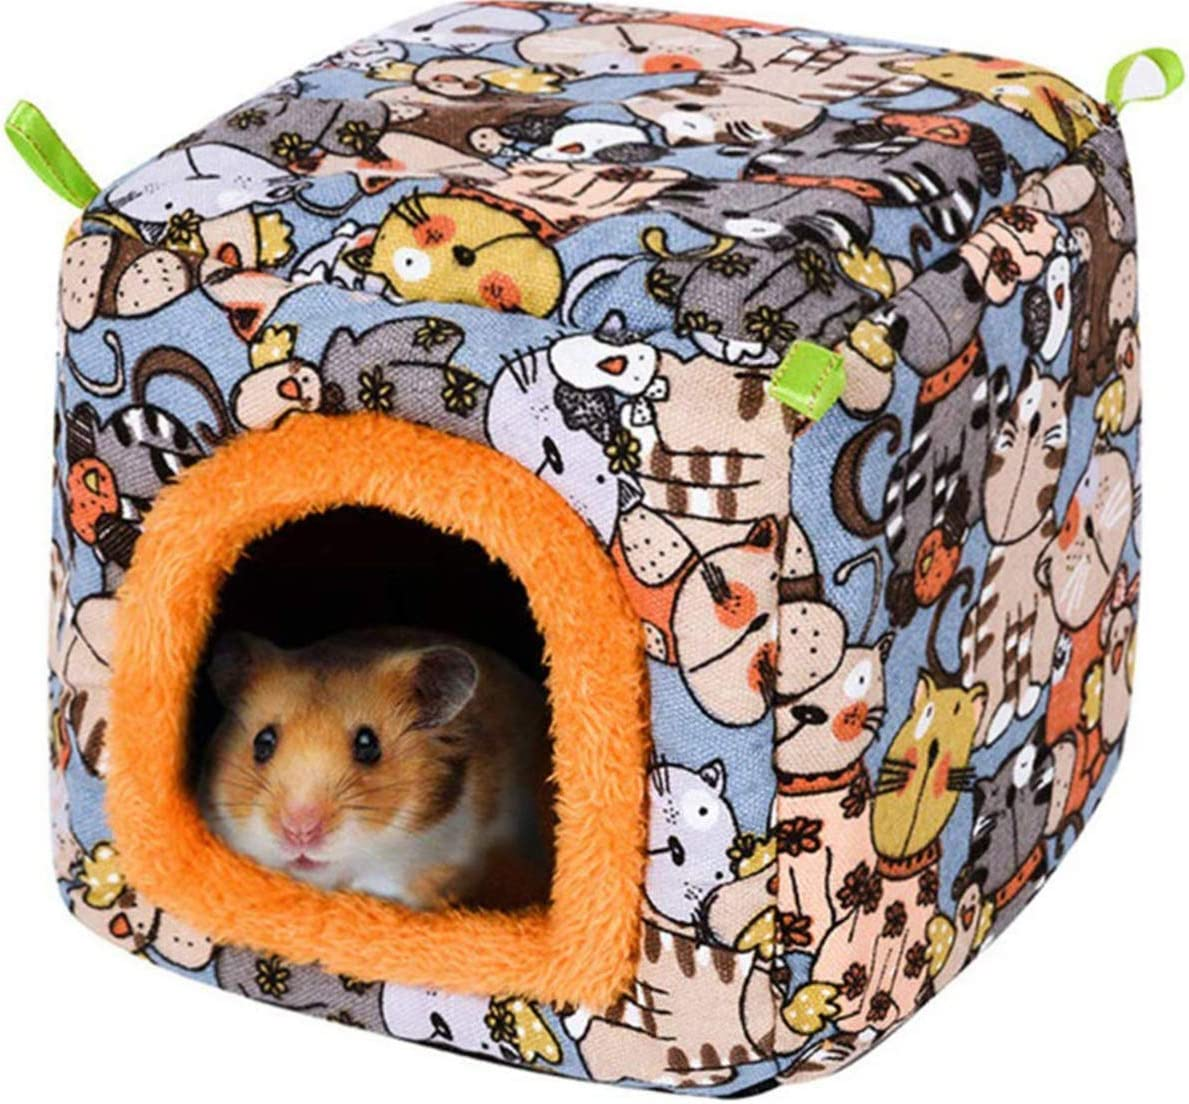 Rat Small pet Hamster Mickey Mouse Small  Large Cuddle Cube Hedgehog Guinea Pig